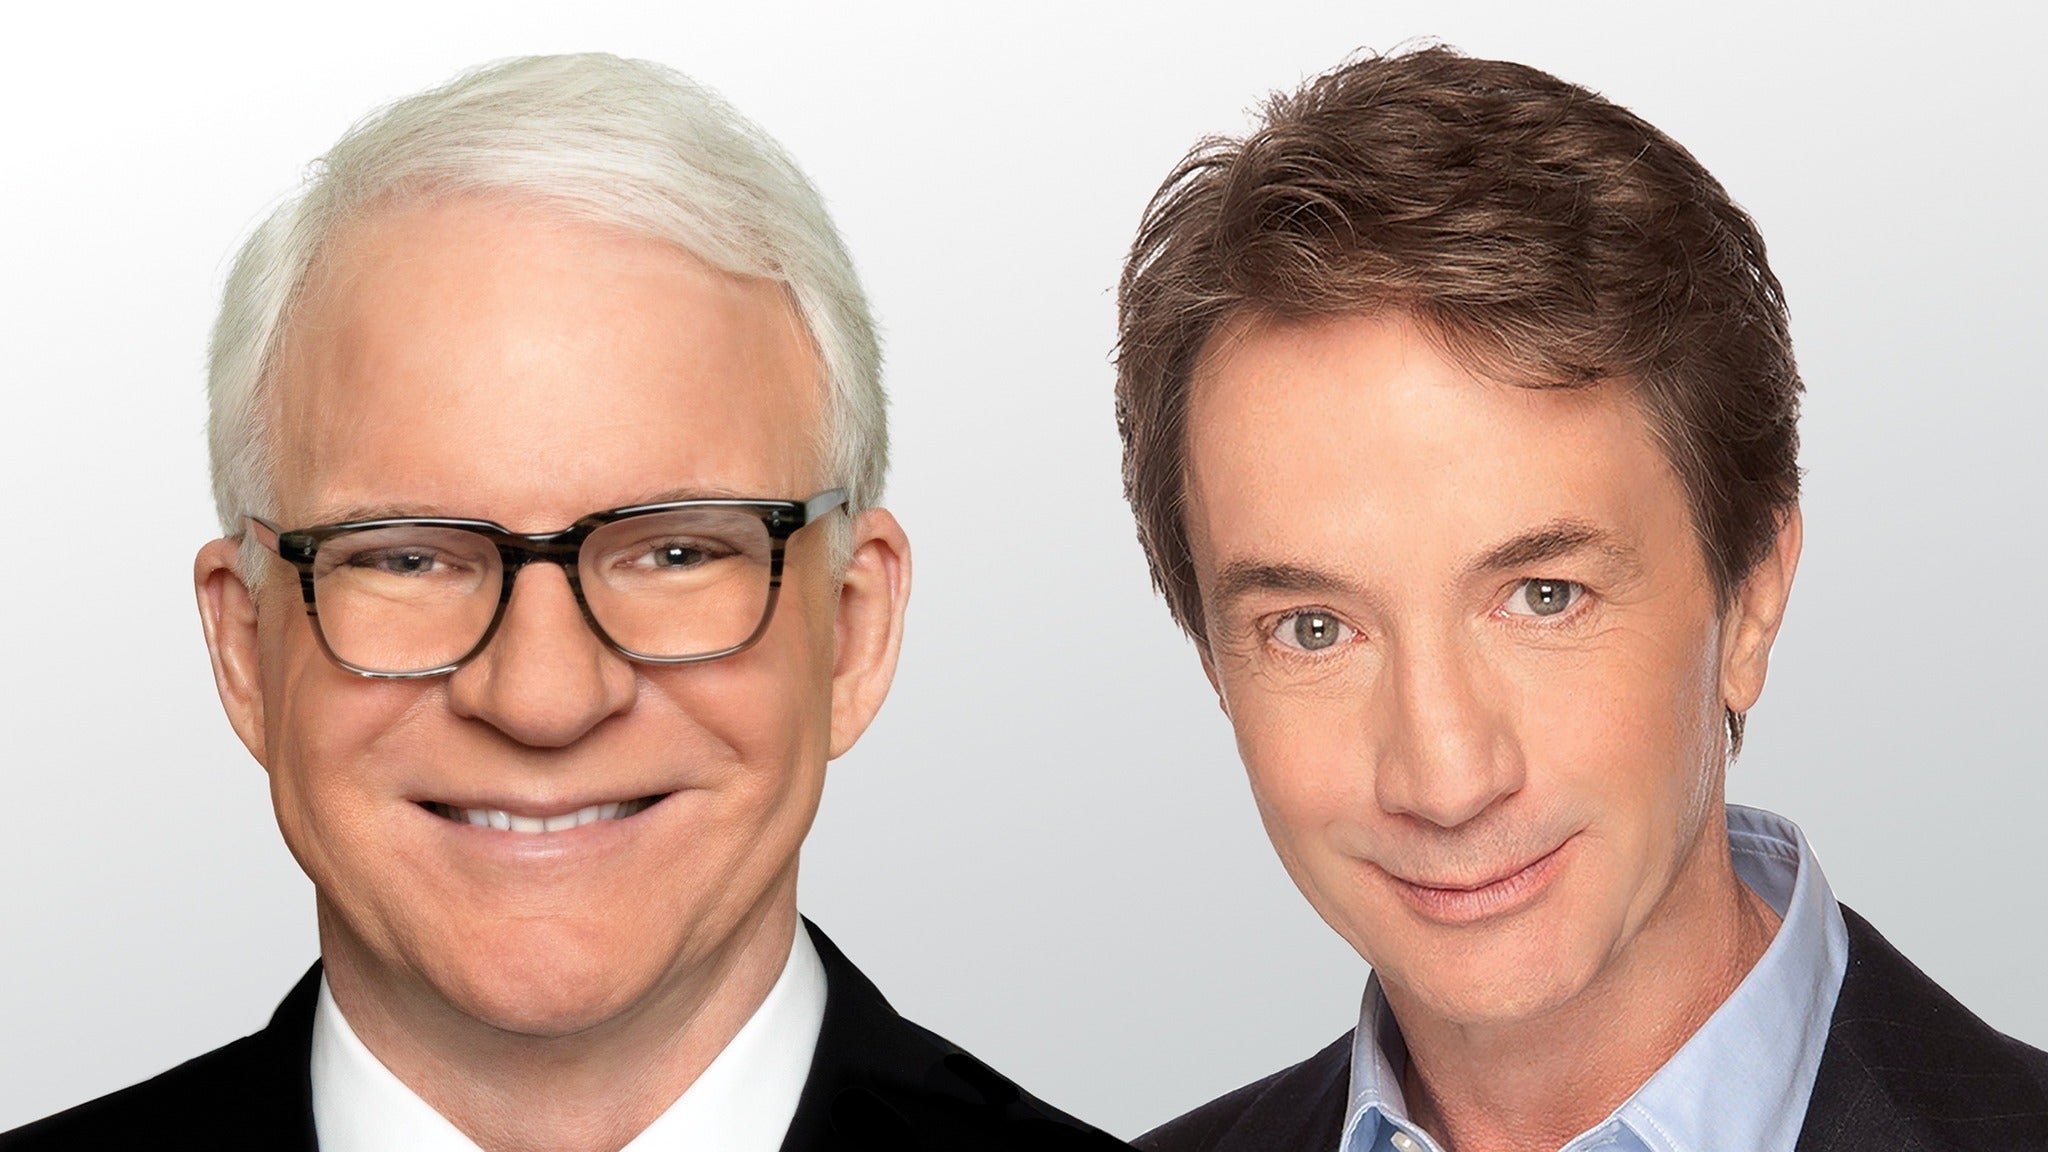 Steve Martin & Martin Short at Indiana University Auditorium